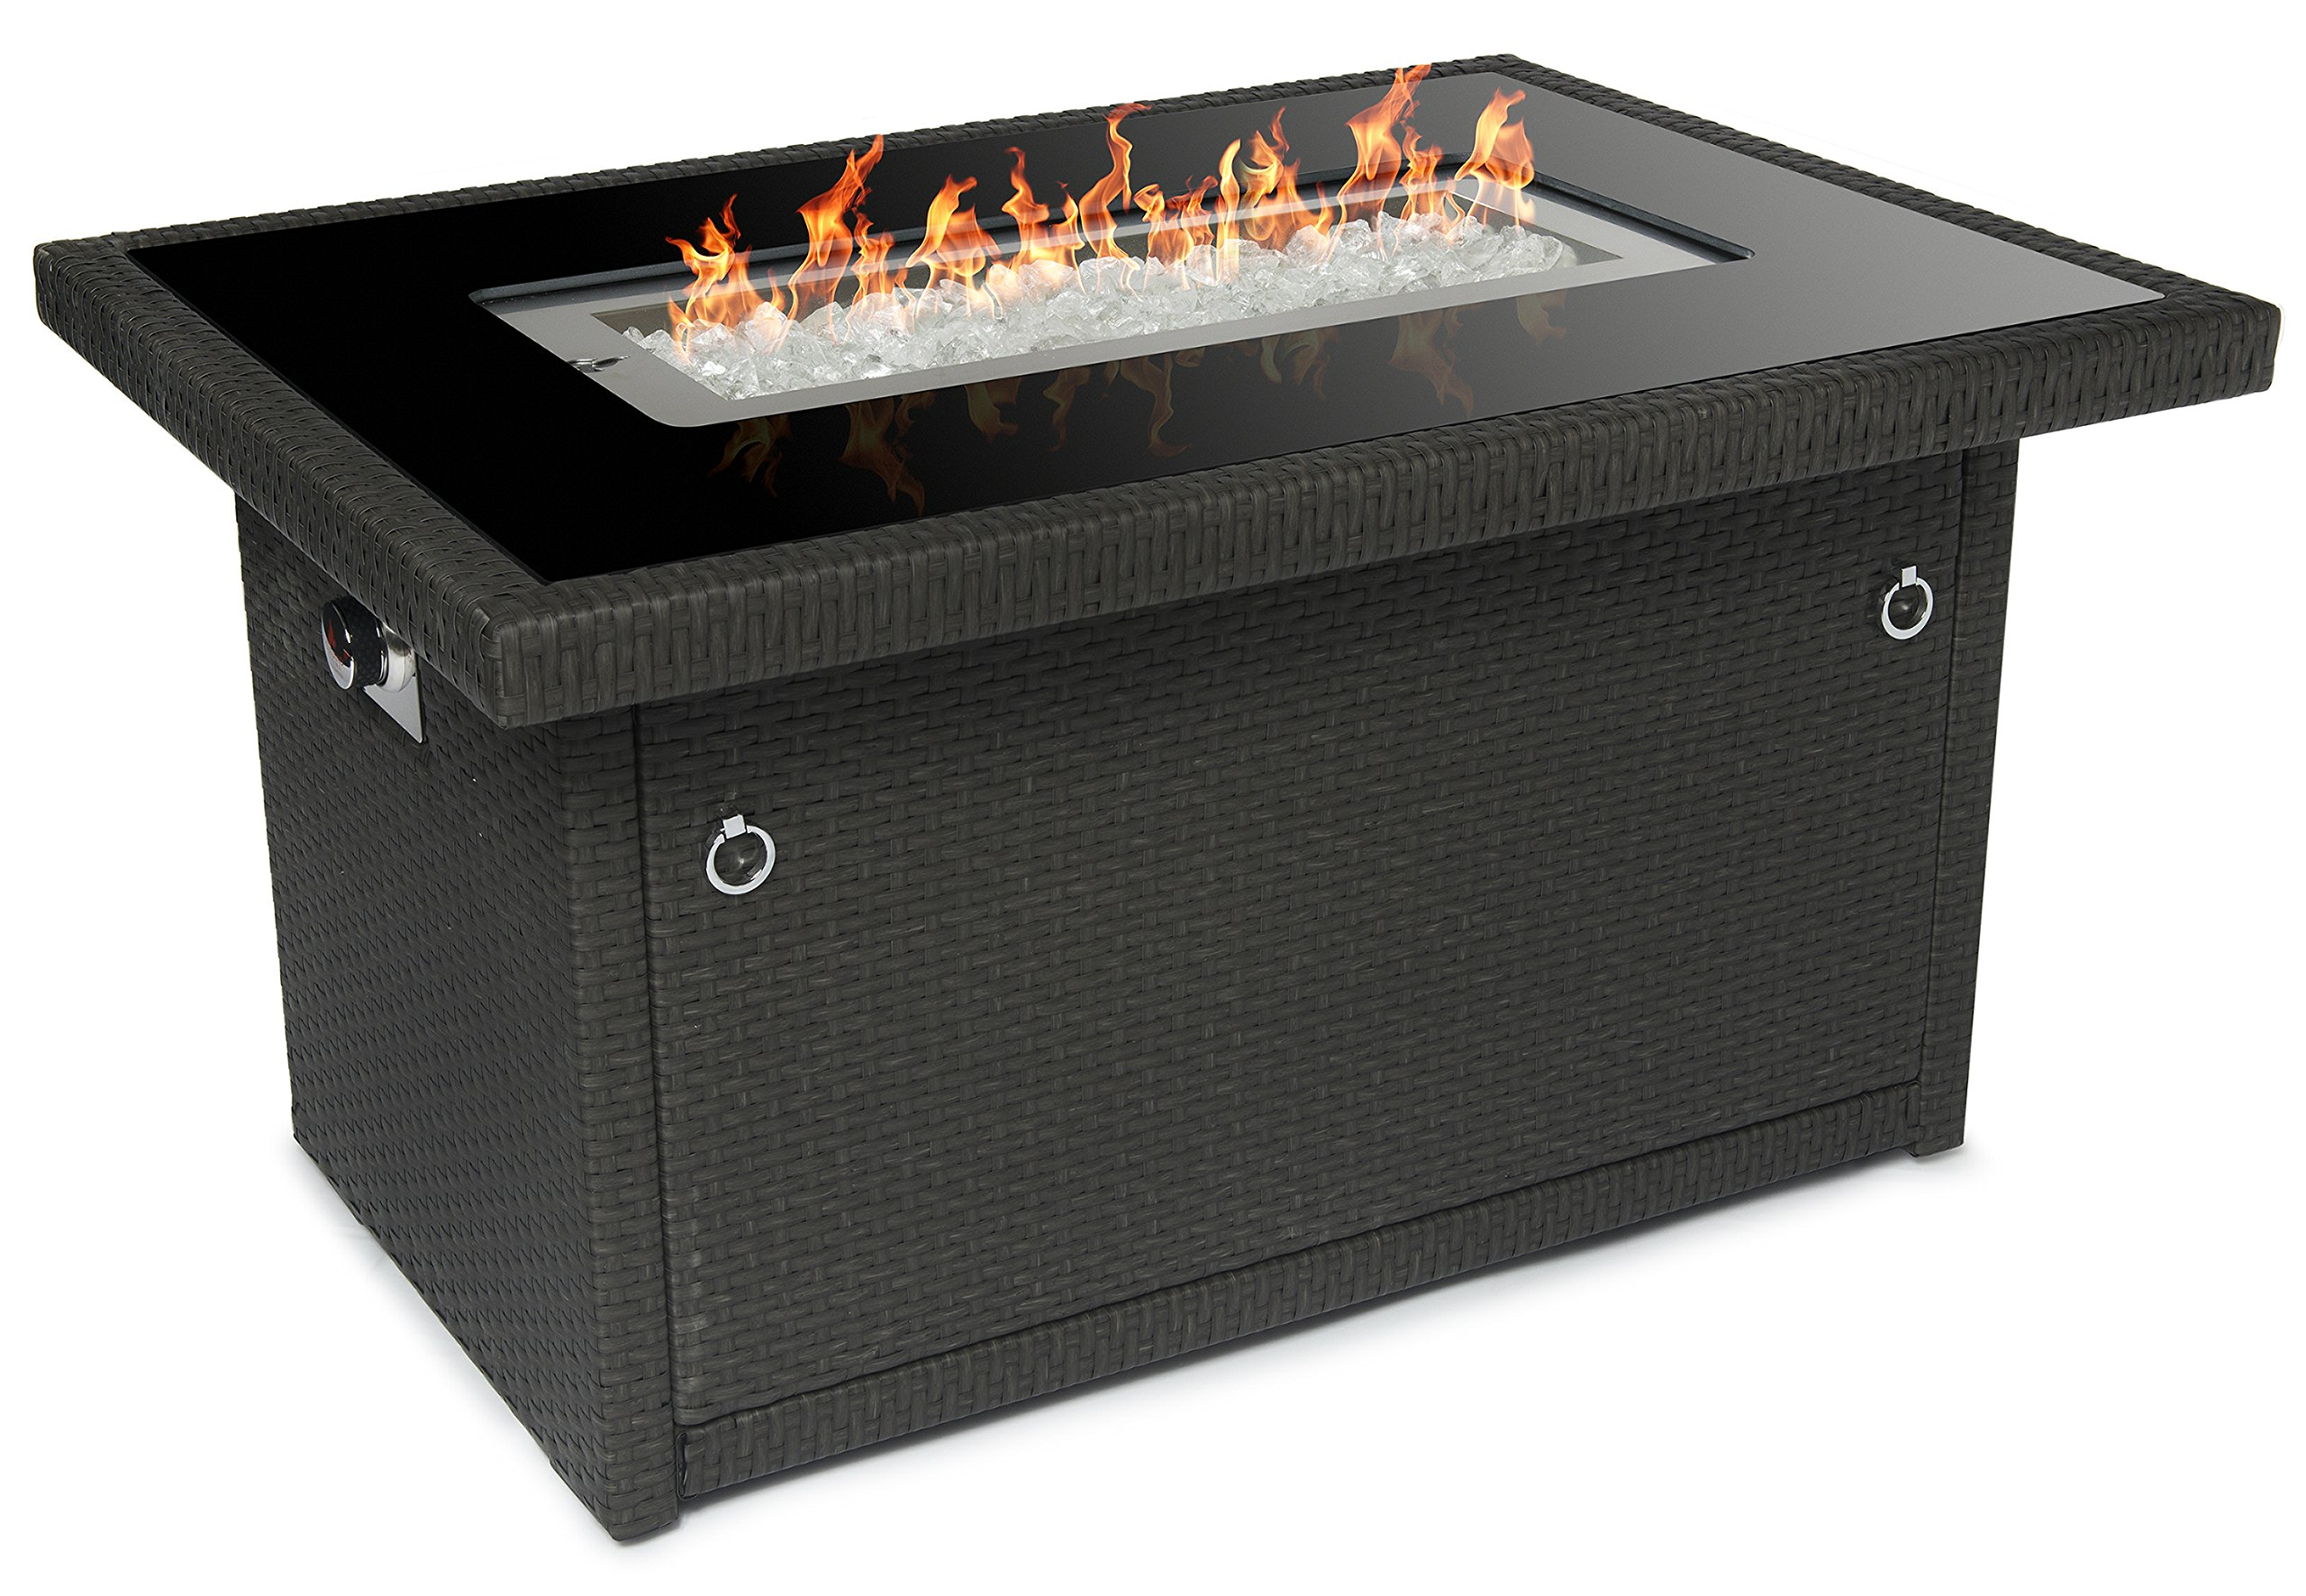 Outland Fire Table, Aluminum Frame Propane Fire Pit Table w/Black Tempered Glass Tabletop Resin Wicker Panels & Arctic Ice Glass Rocks, Model 401 35,000 BTU Auto-ignition (Slate Grey)